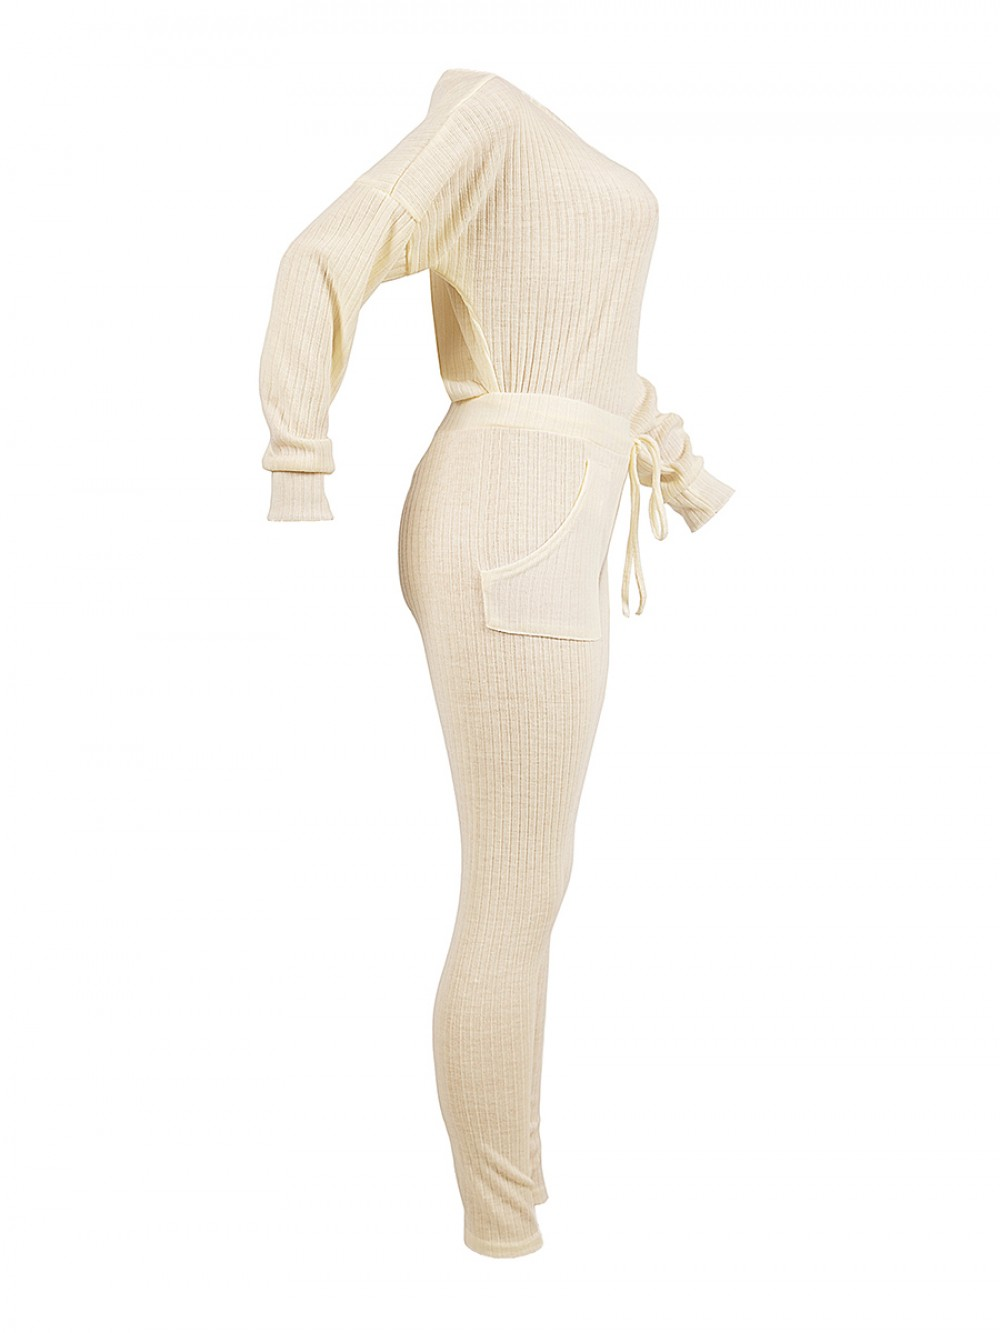 Cheeky Creamy-White High Rise Two-Piece Oblique Shoulder